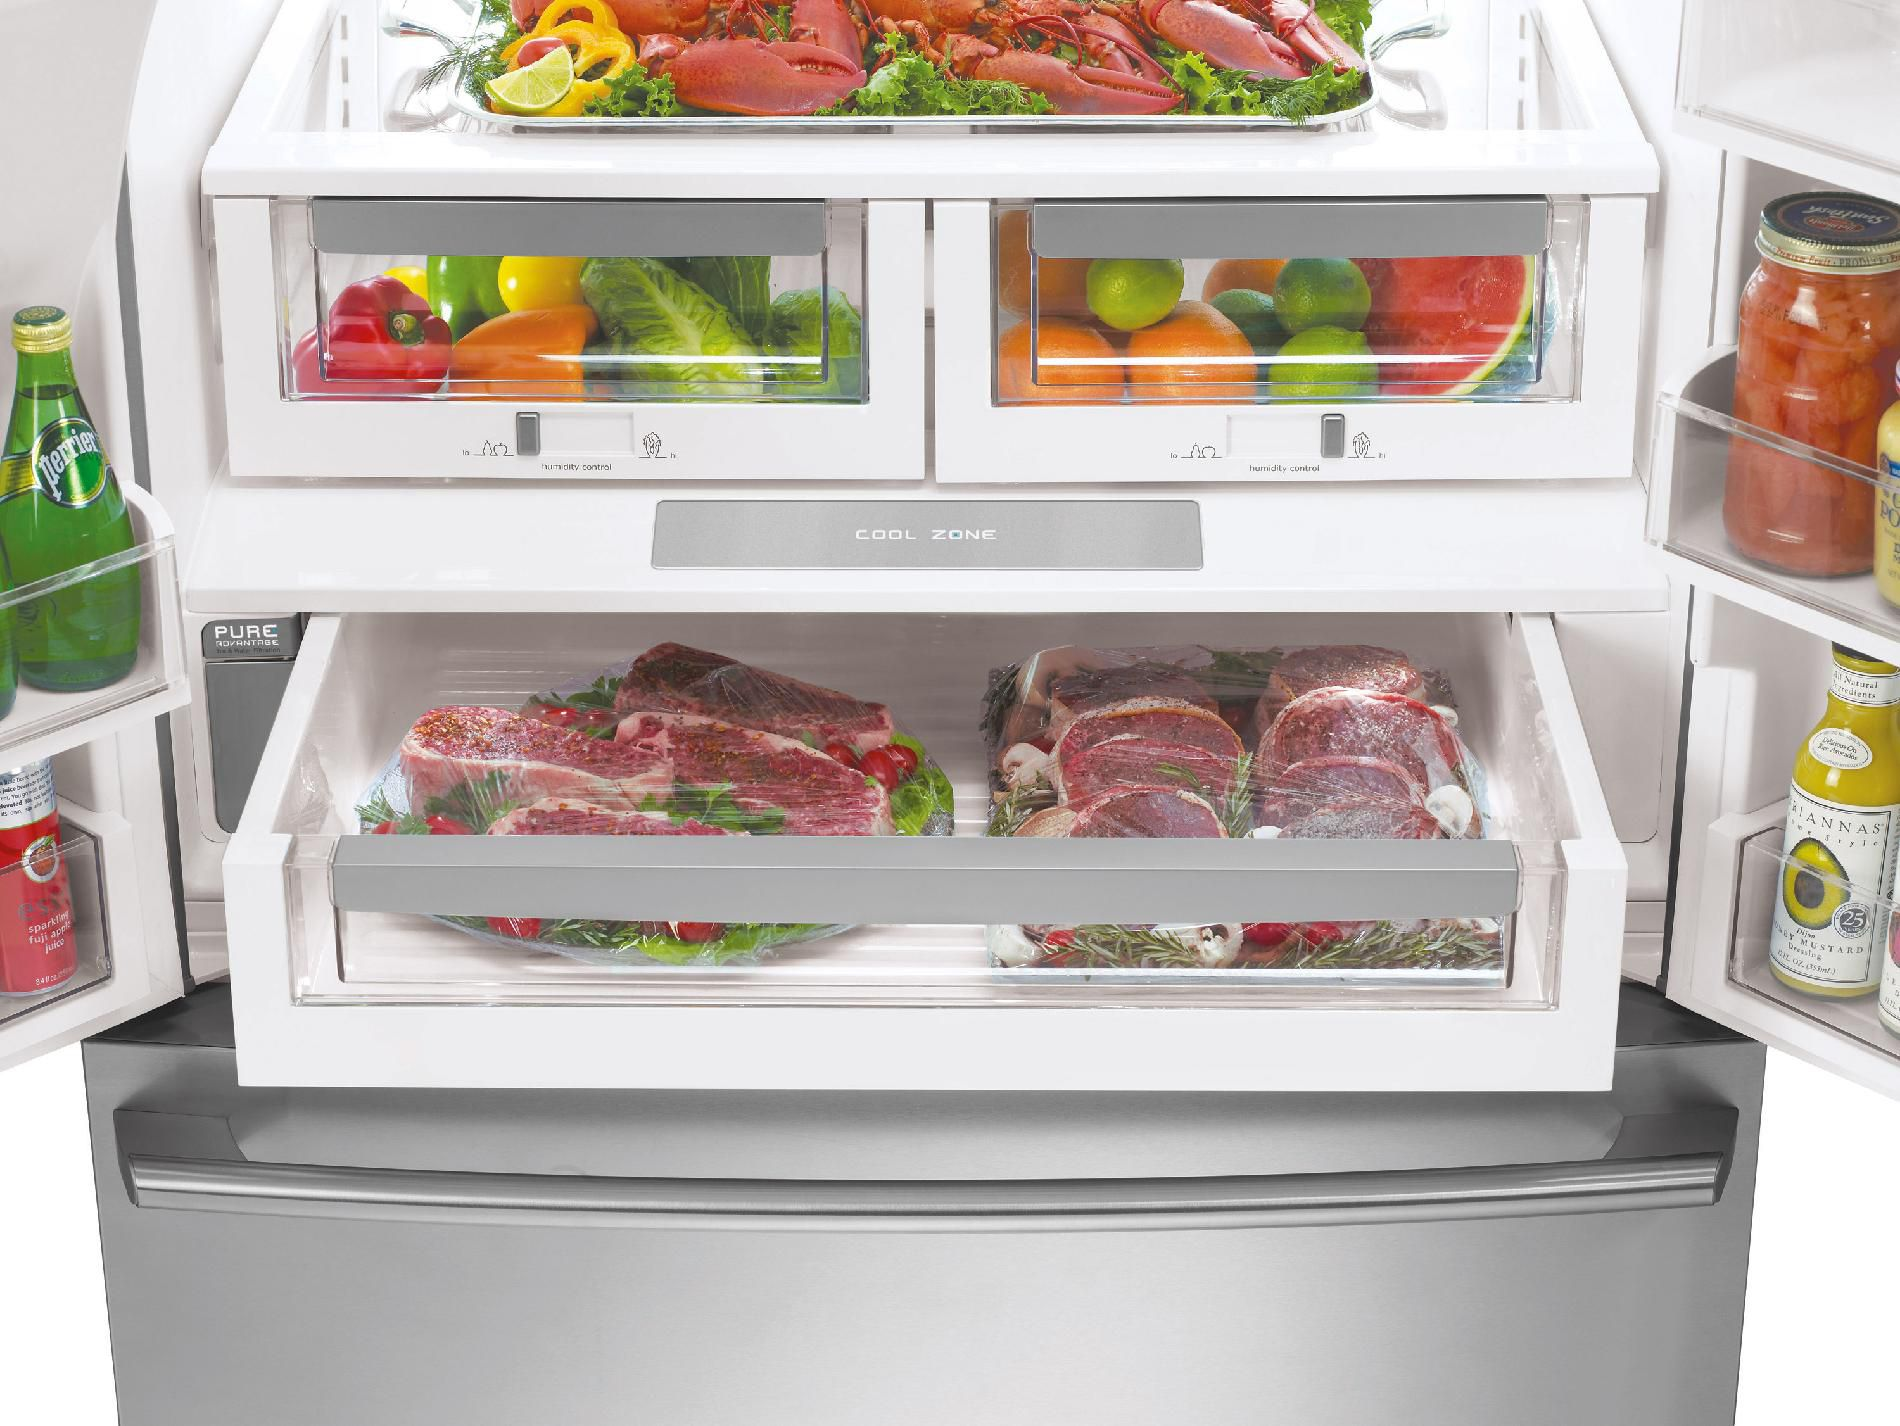 Electrolux EI23BC35KS Stainless Steel 22.6 cu. ft. Counter-depth French Door Refrigerator